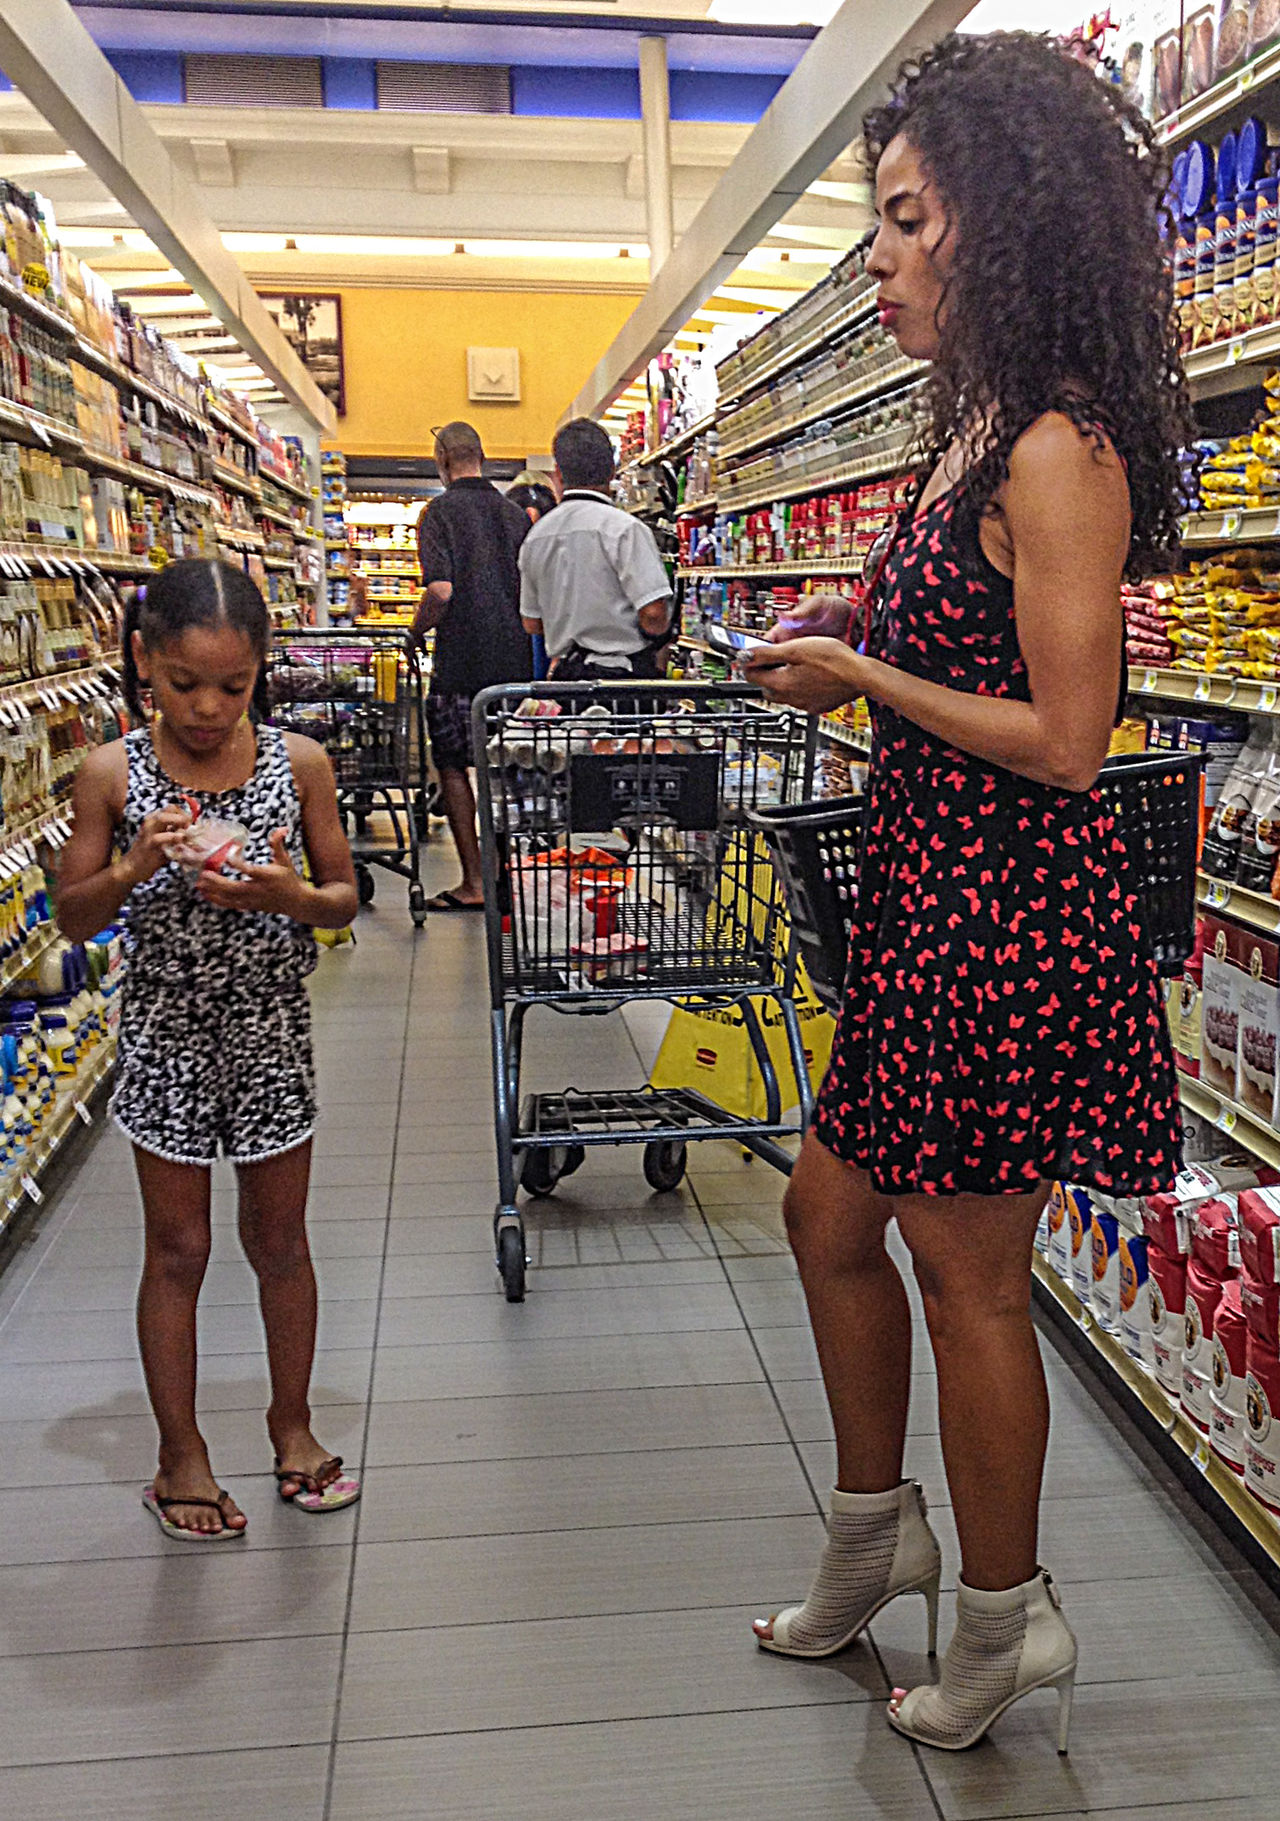 Candid Candid Photography Child Daughter Dress Food Shopping Full Length High Heels Legs Lifestyles Mom Real People Retail  Shopping Standing Store Streetphotography Togetherness